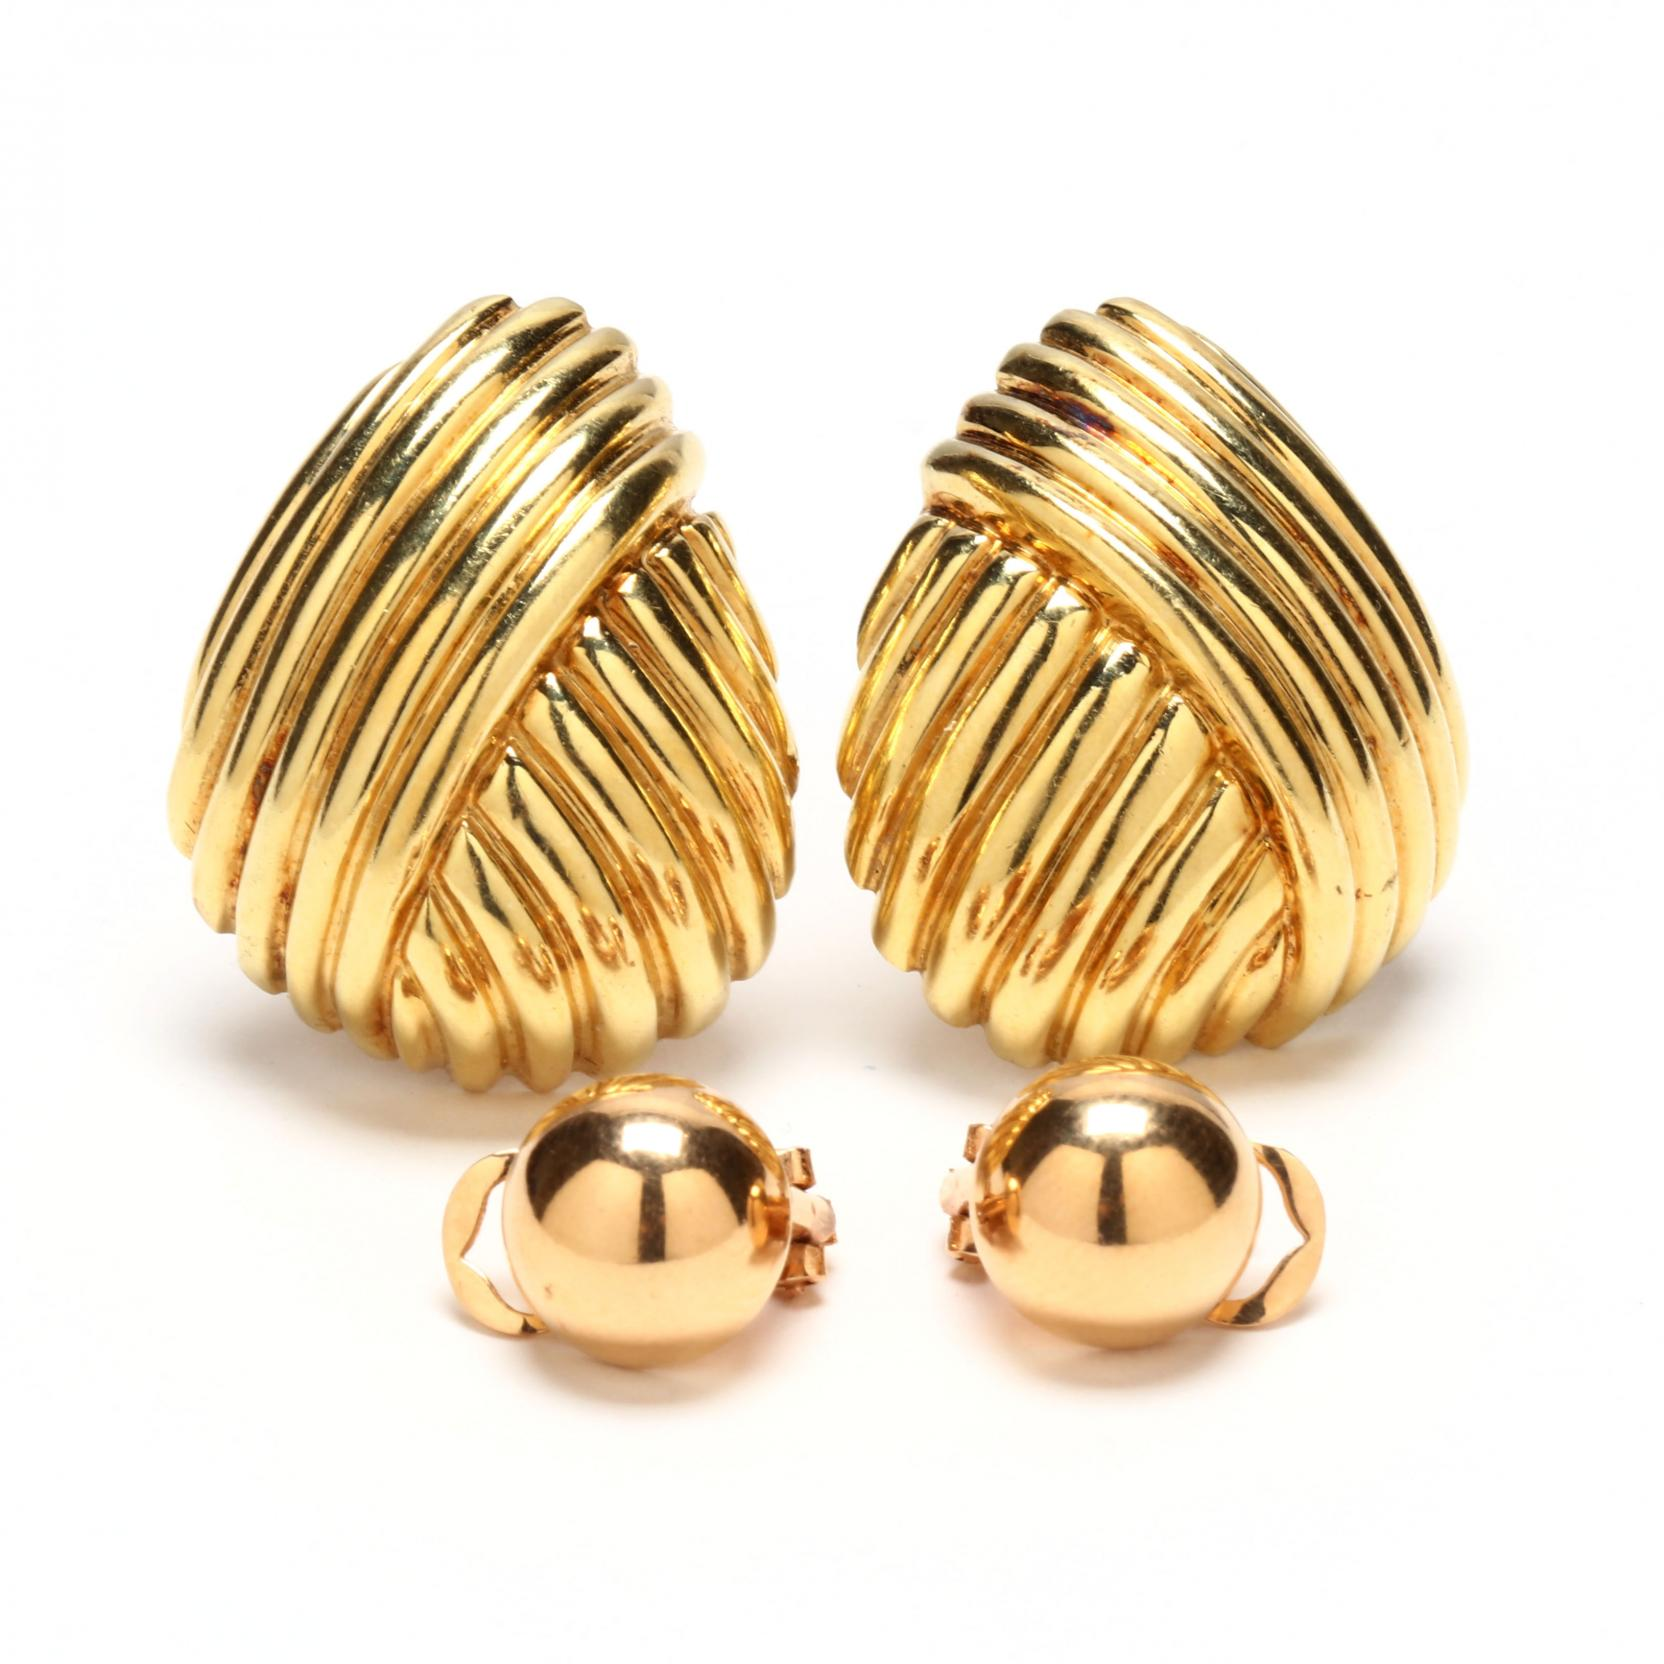 two-pairs-of-18kt-gold-ear-clips